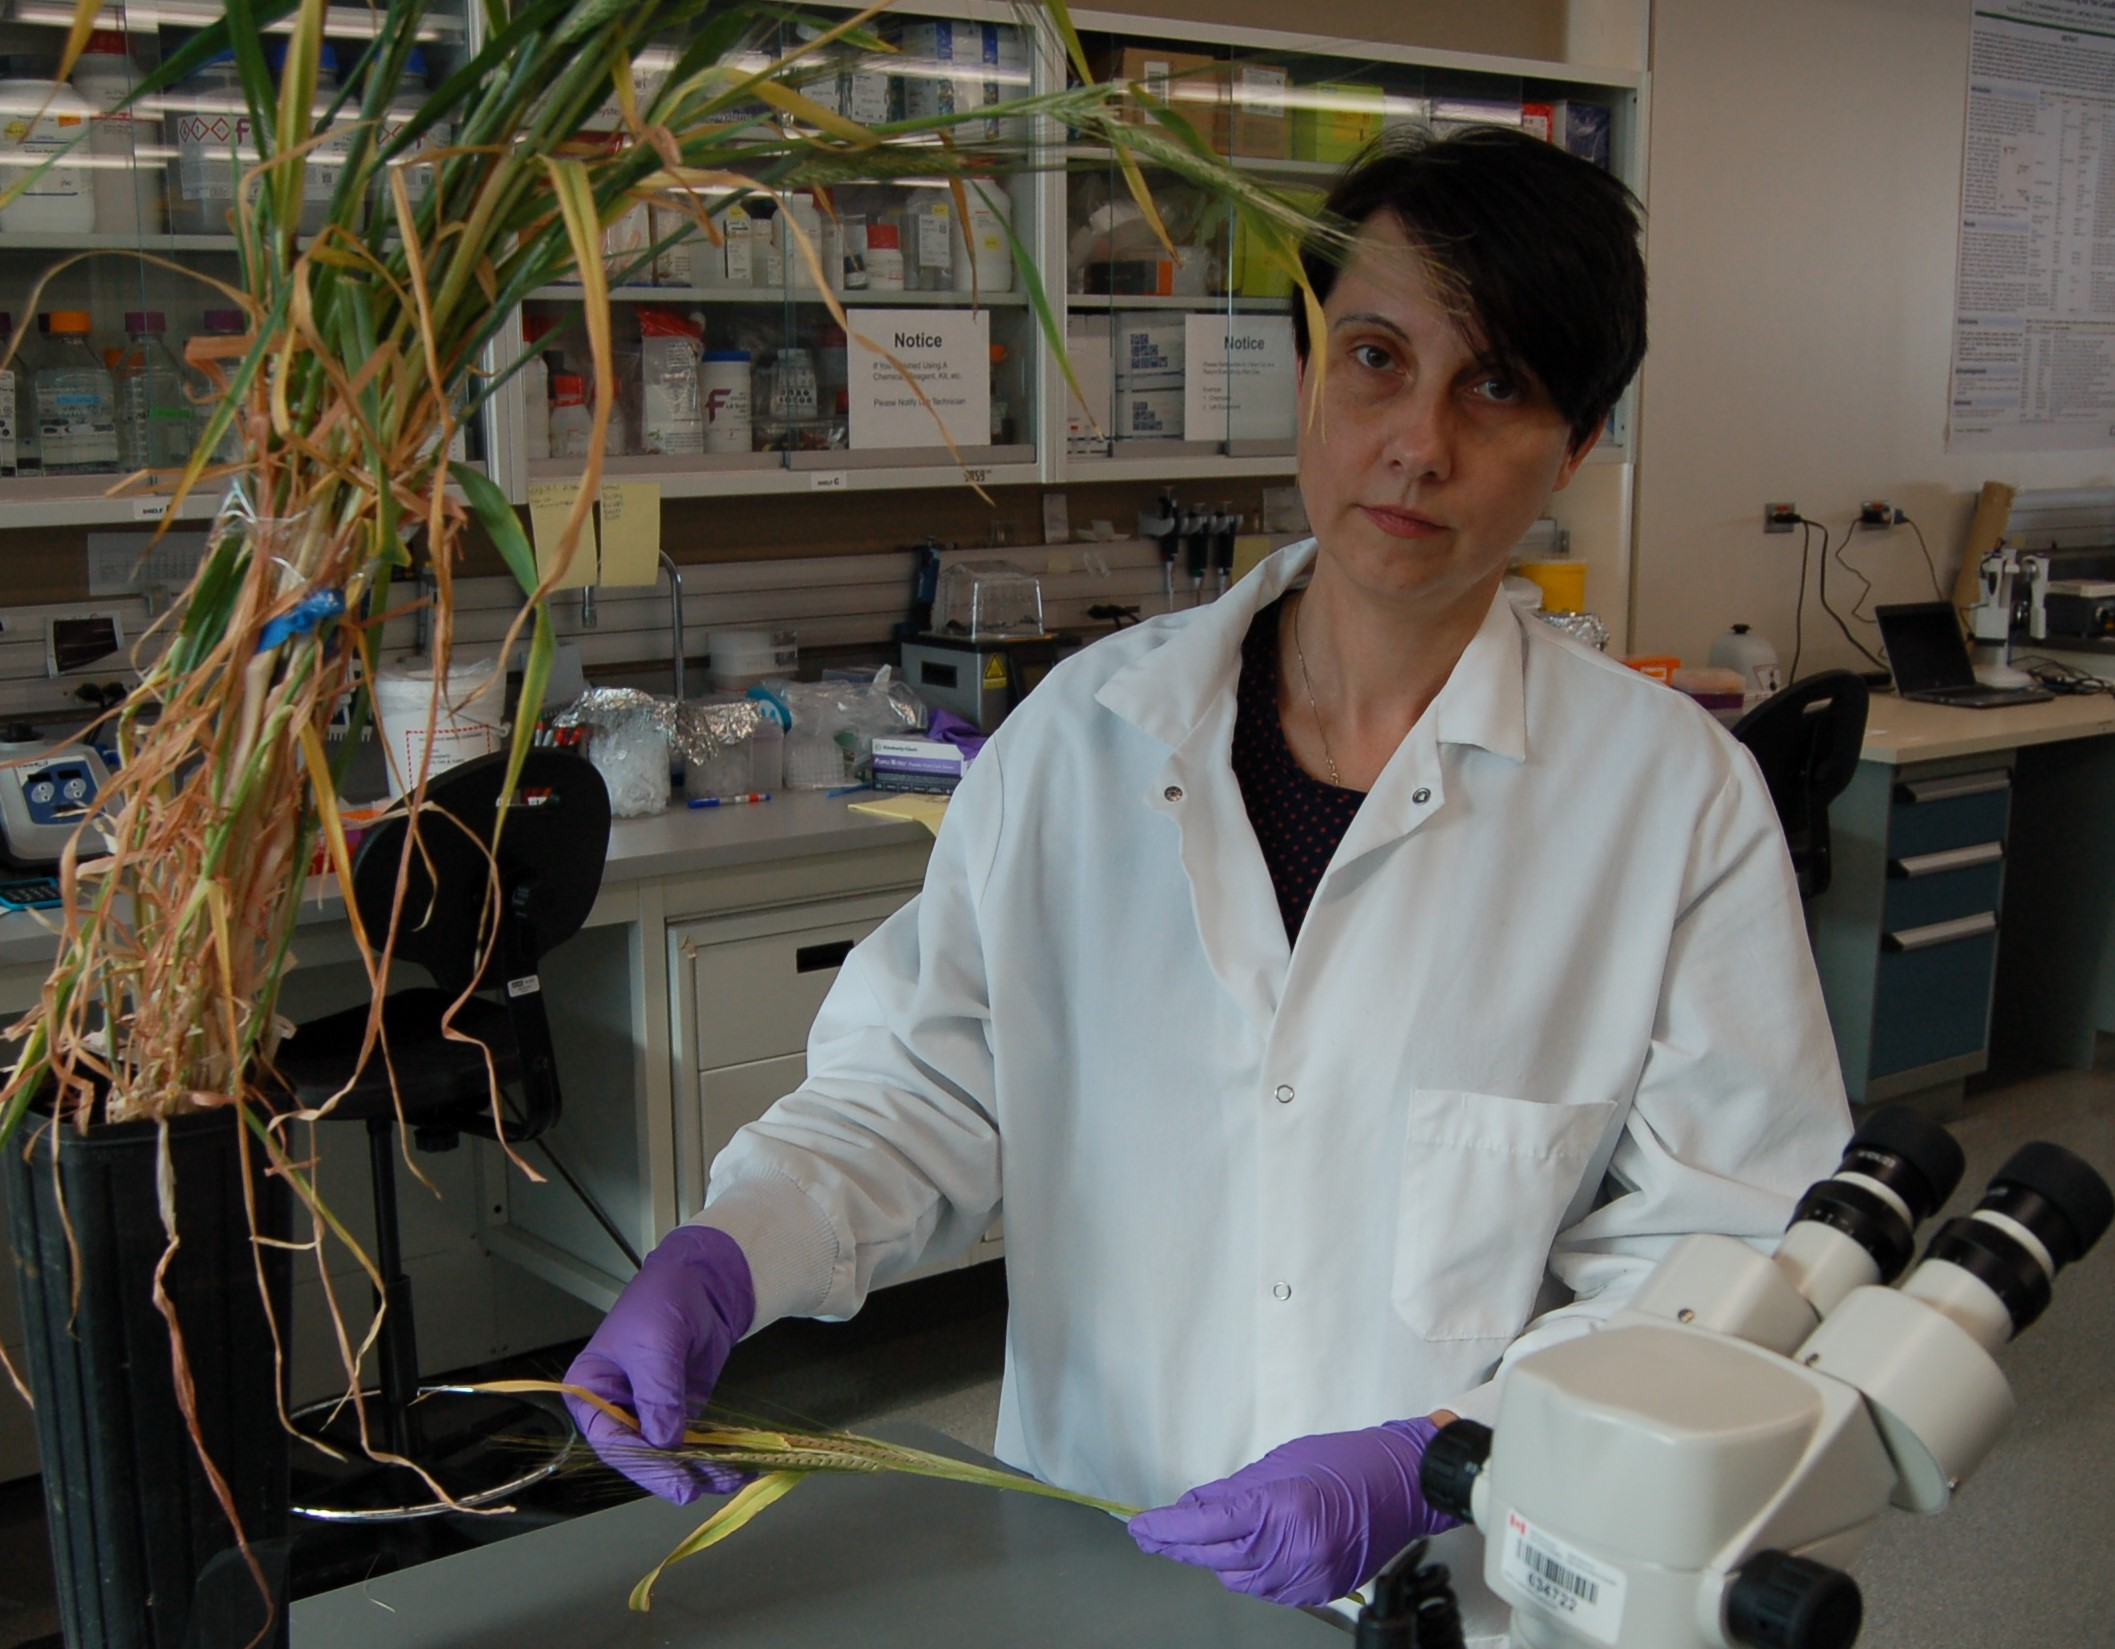 Scientist Ana Badea inspects tall barley plants that sit on a bench in a greenhouse.